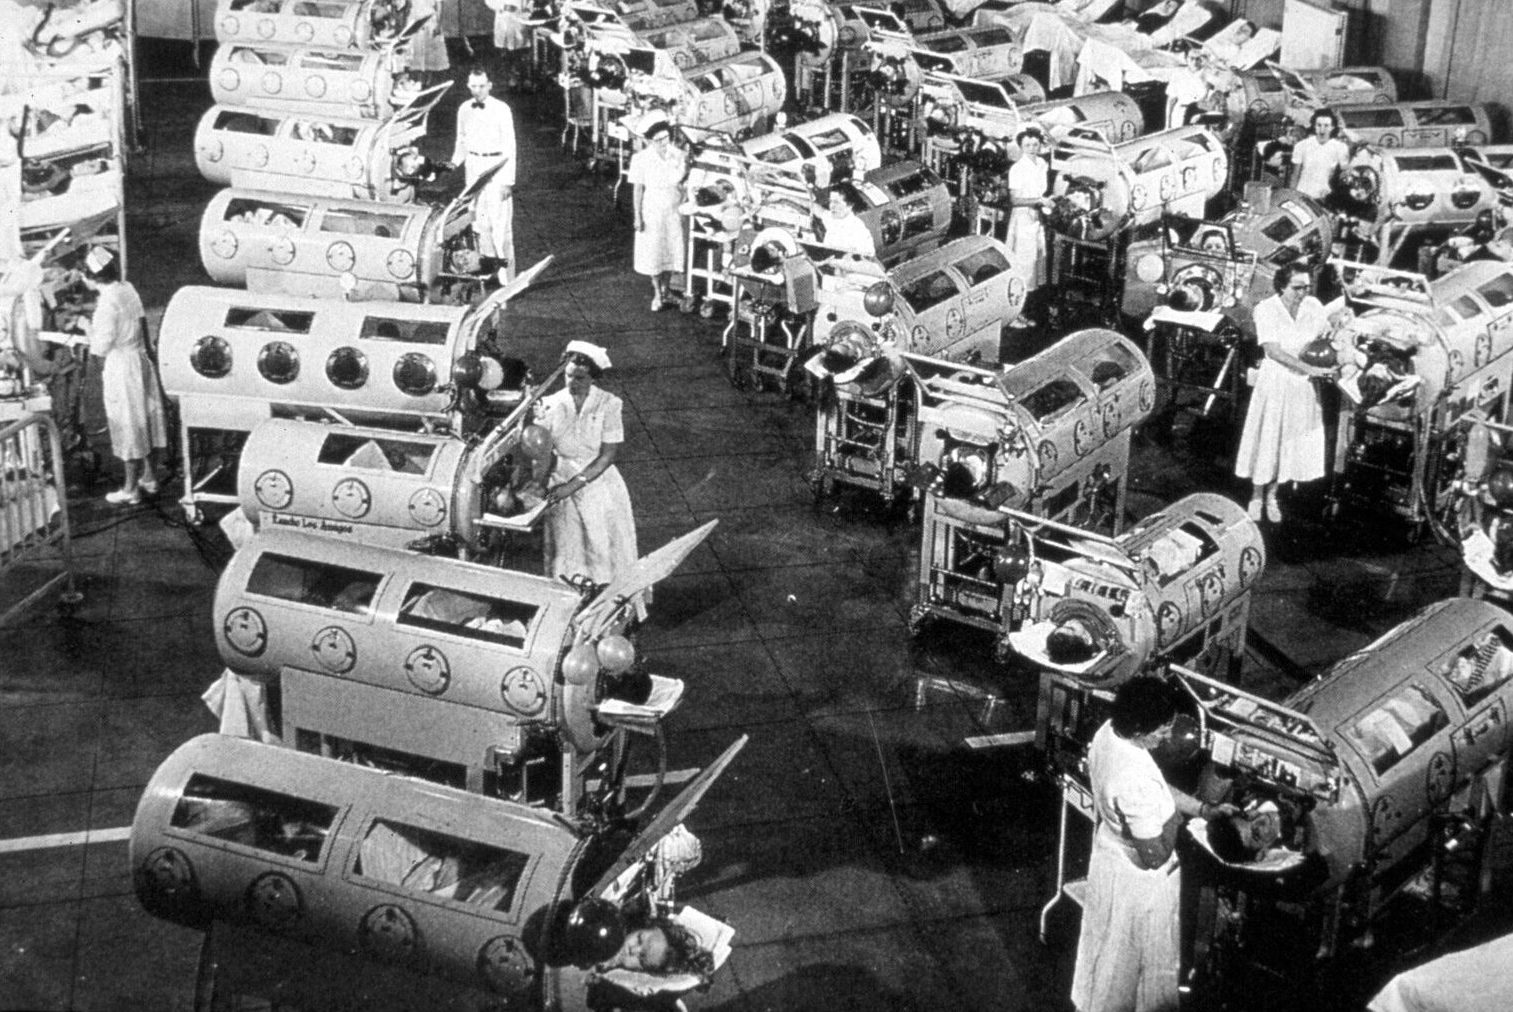 Polio patients in 'metal lungs' somewhere in 1952